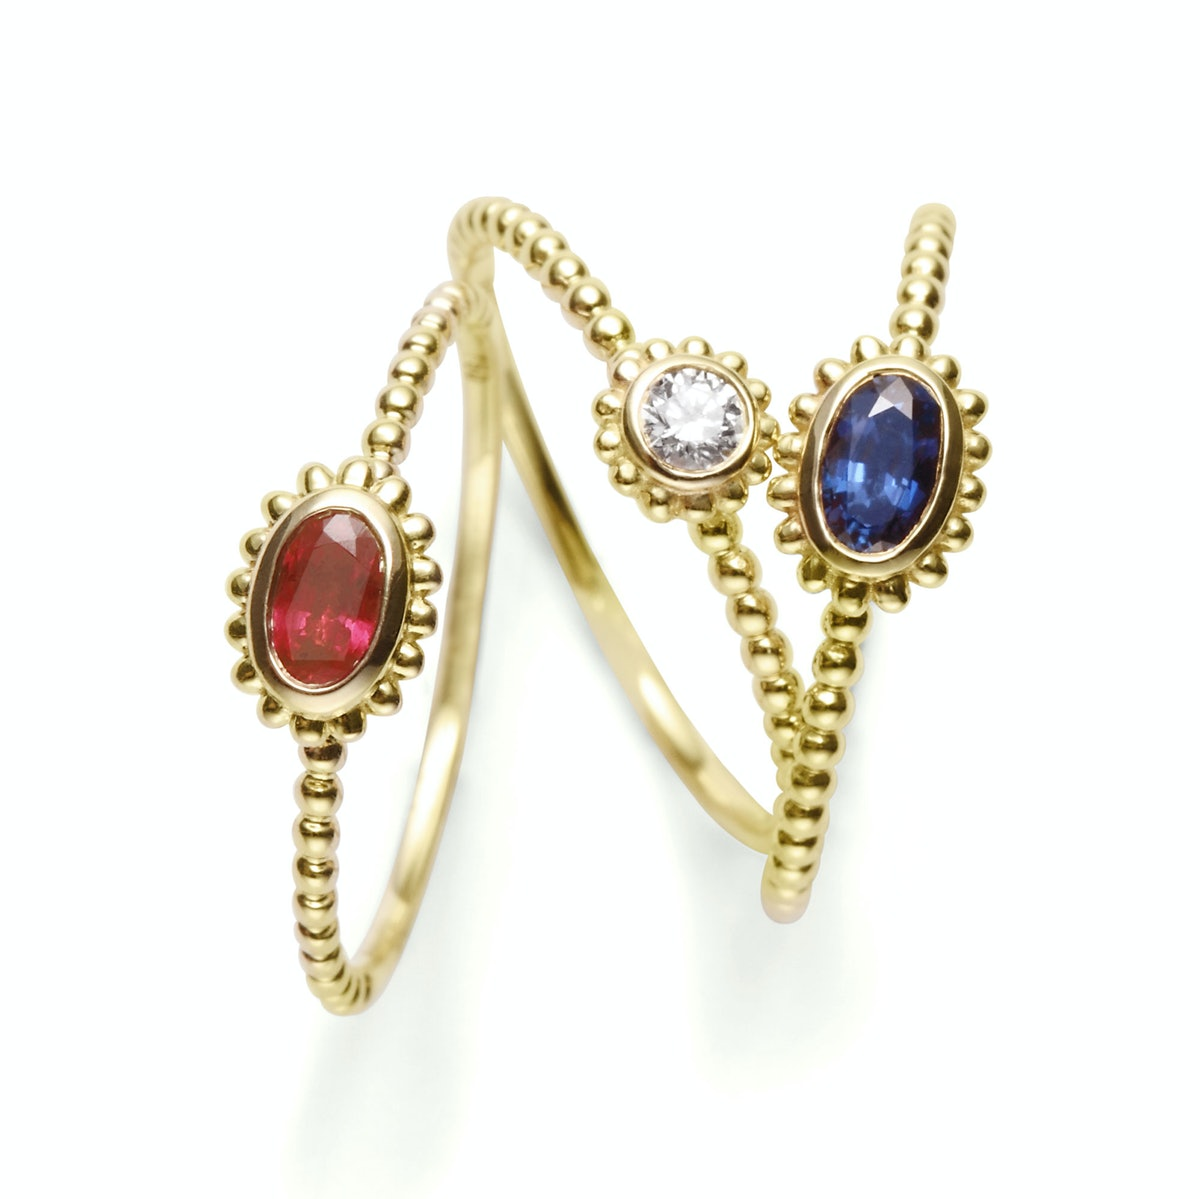 Lagos 18K gold, sapphire, ruby, and diamond rings